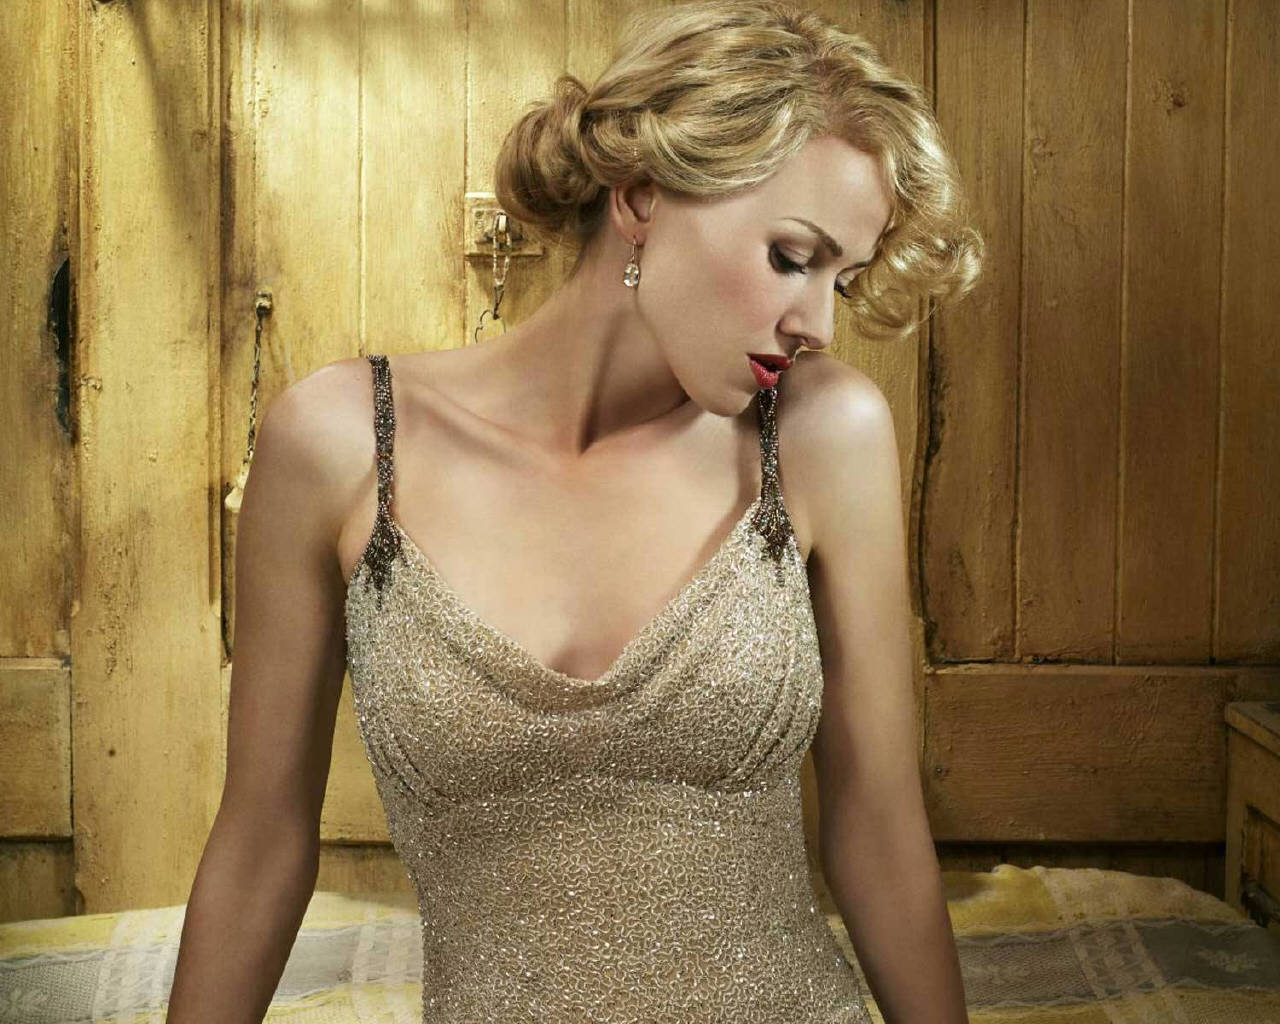 Naomi Watts - Naomi Watts Wallpaper (77243) - Fanpop